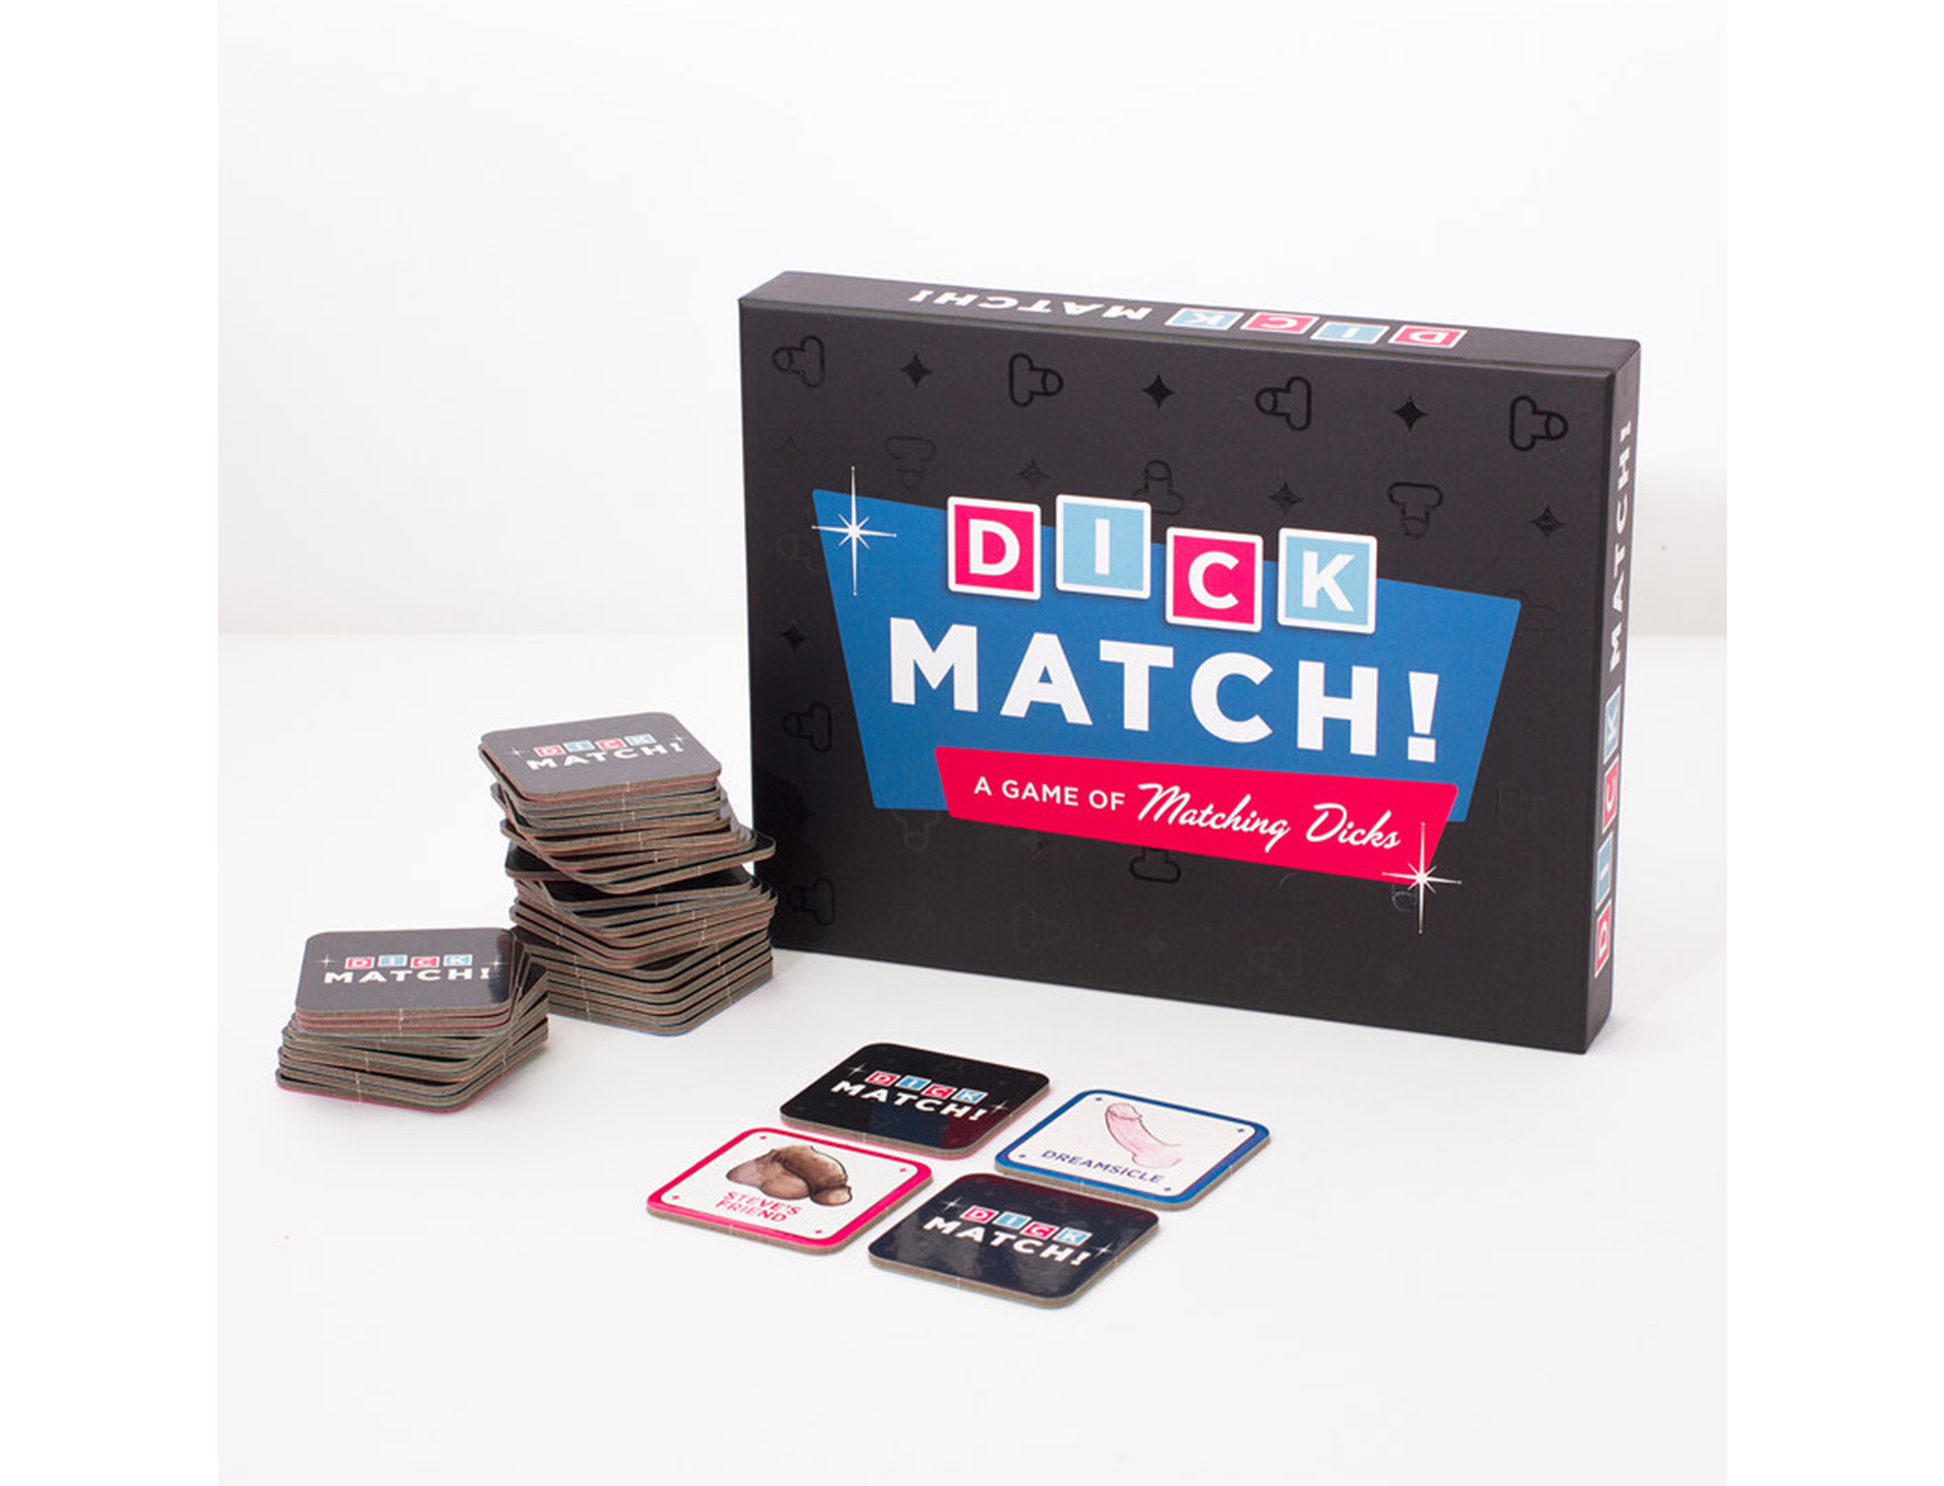 Dick Match (For Ages 18+)